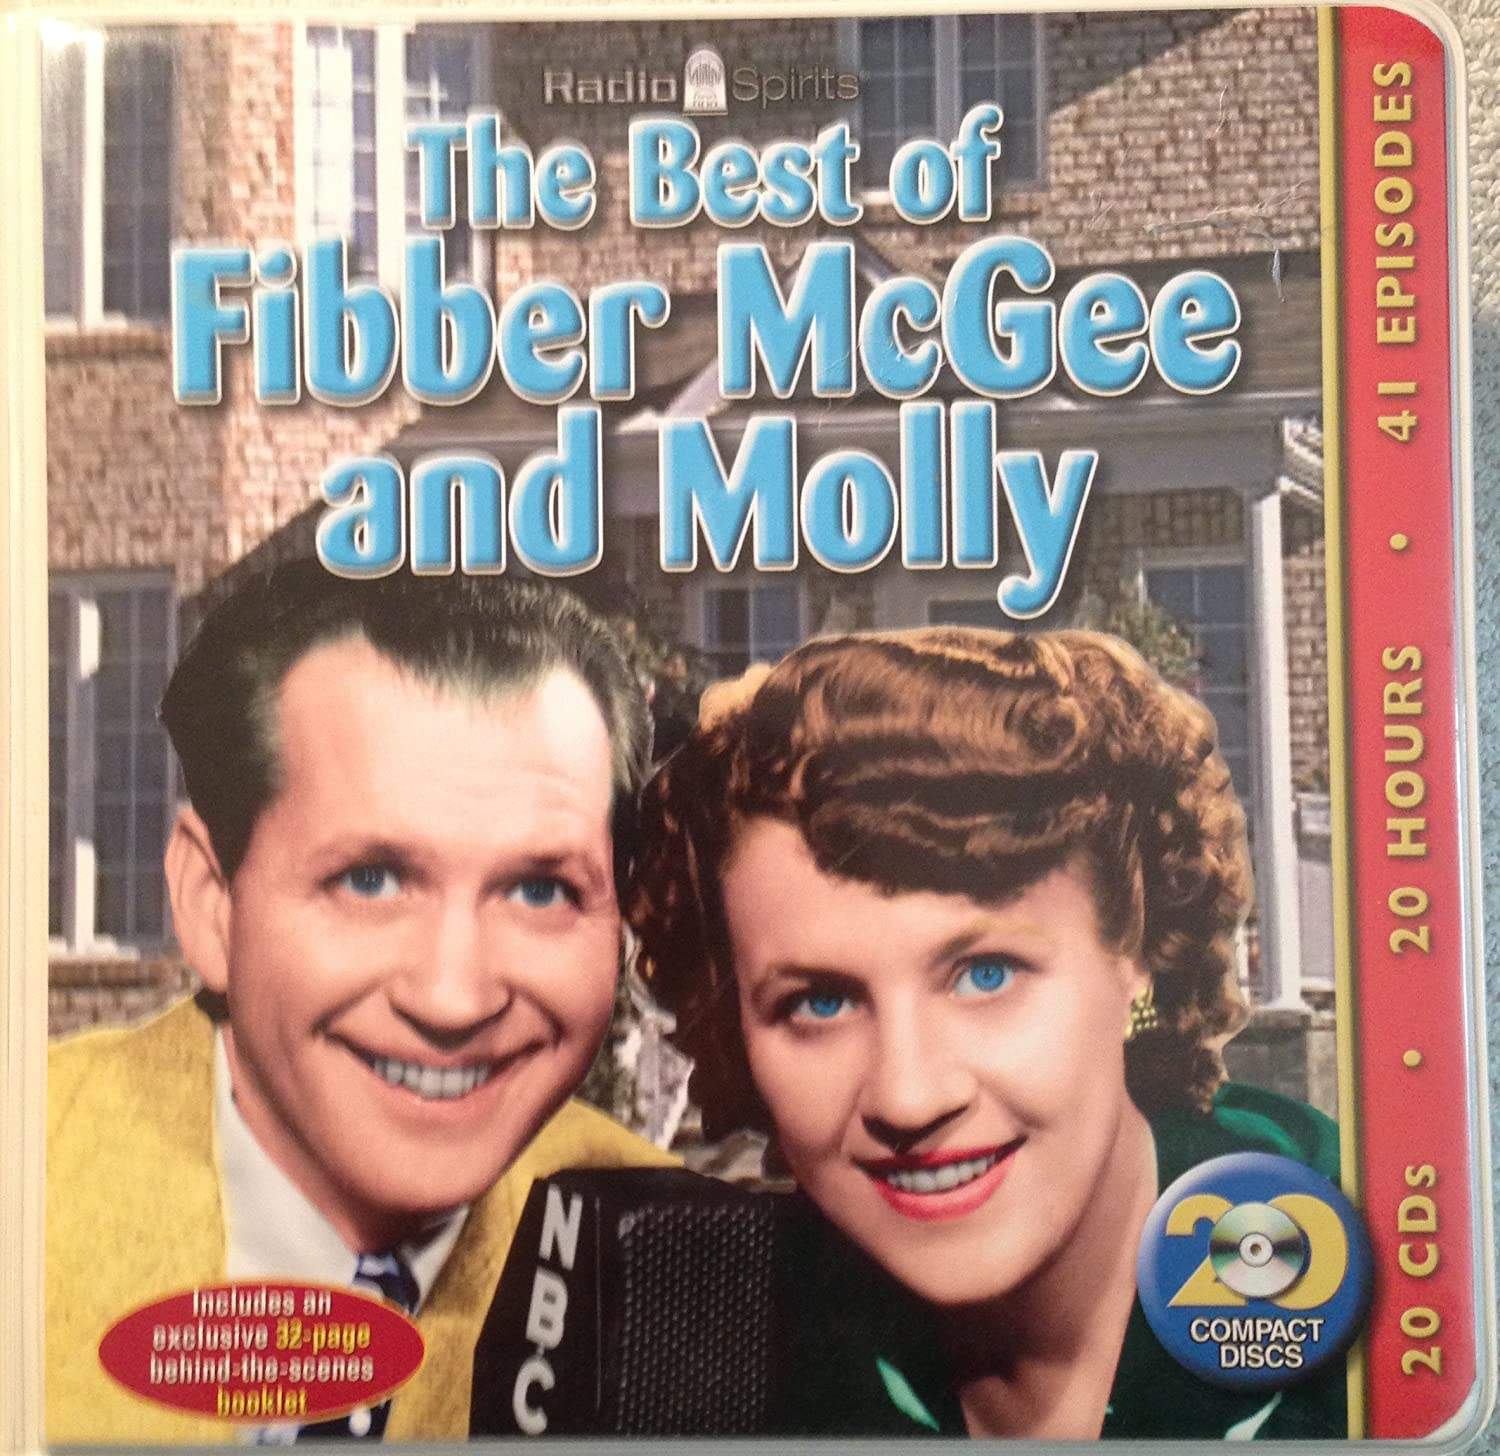 Fibber McGee and Molly Radio Show